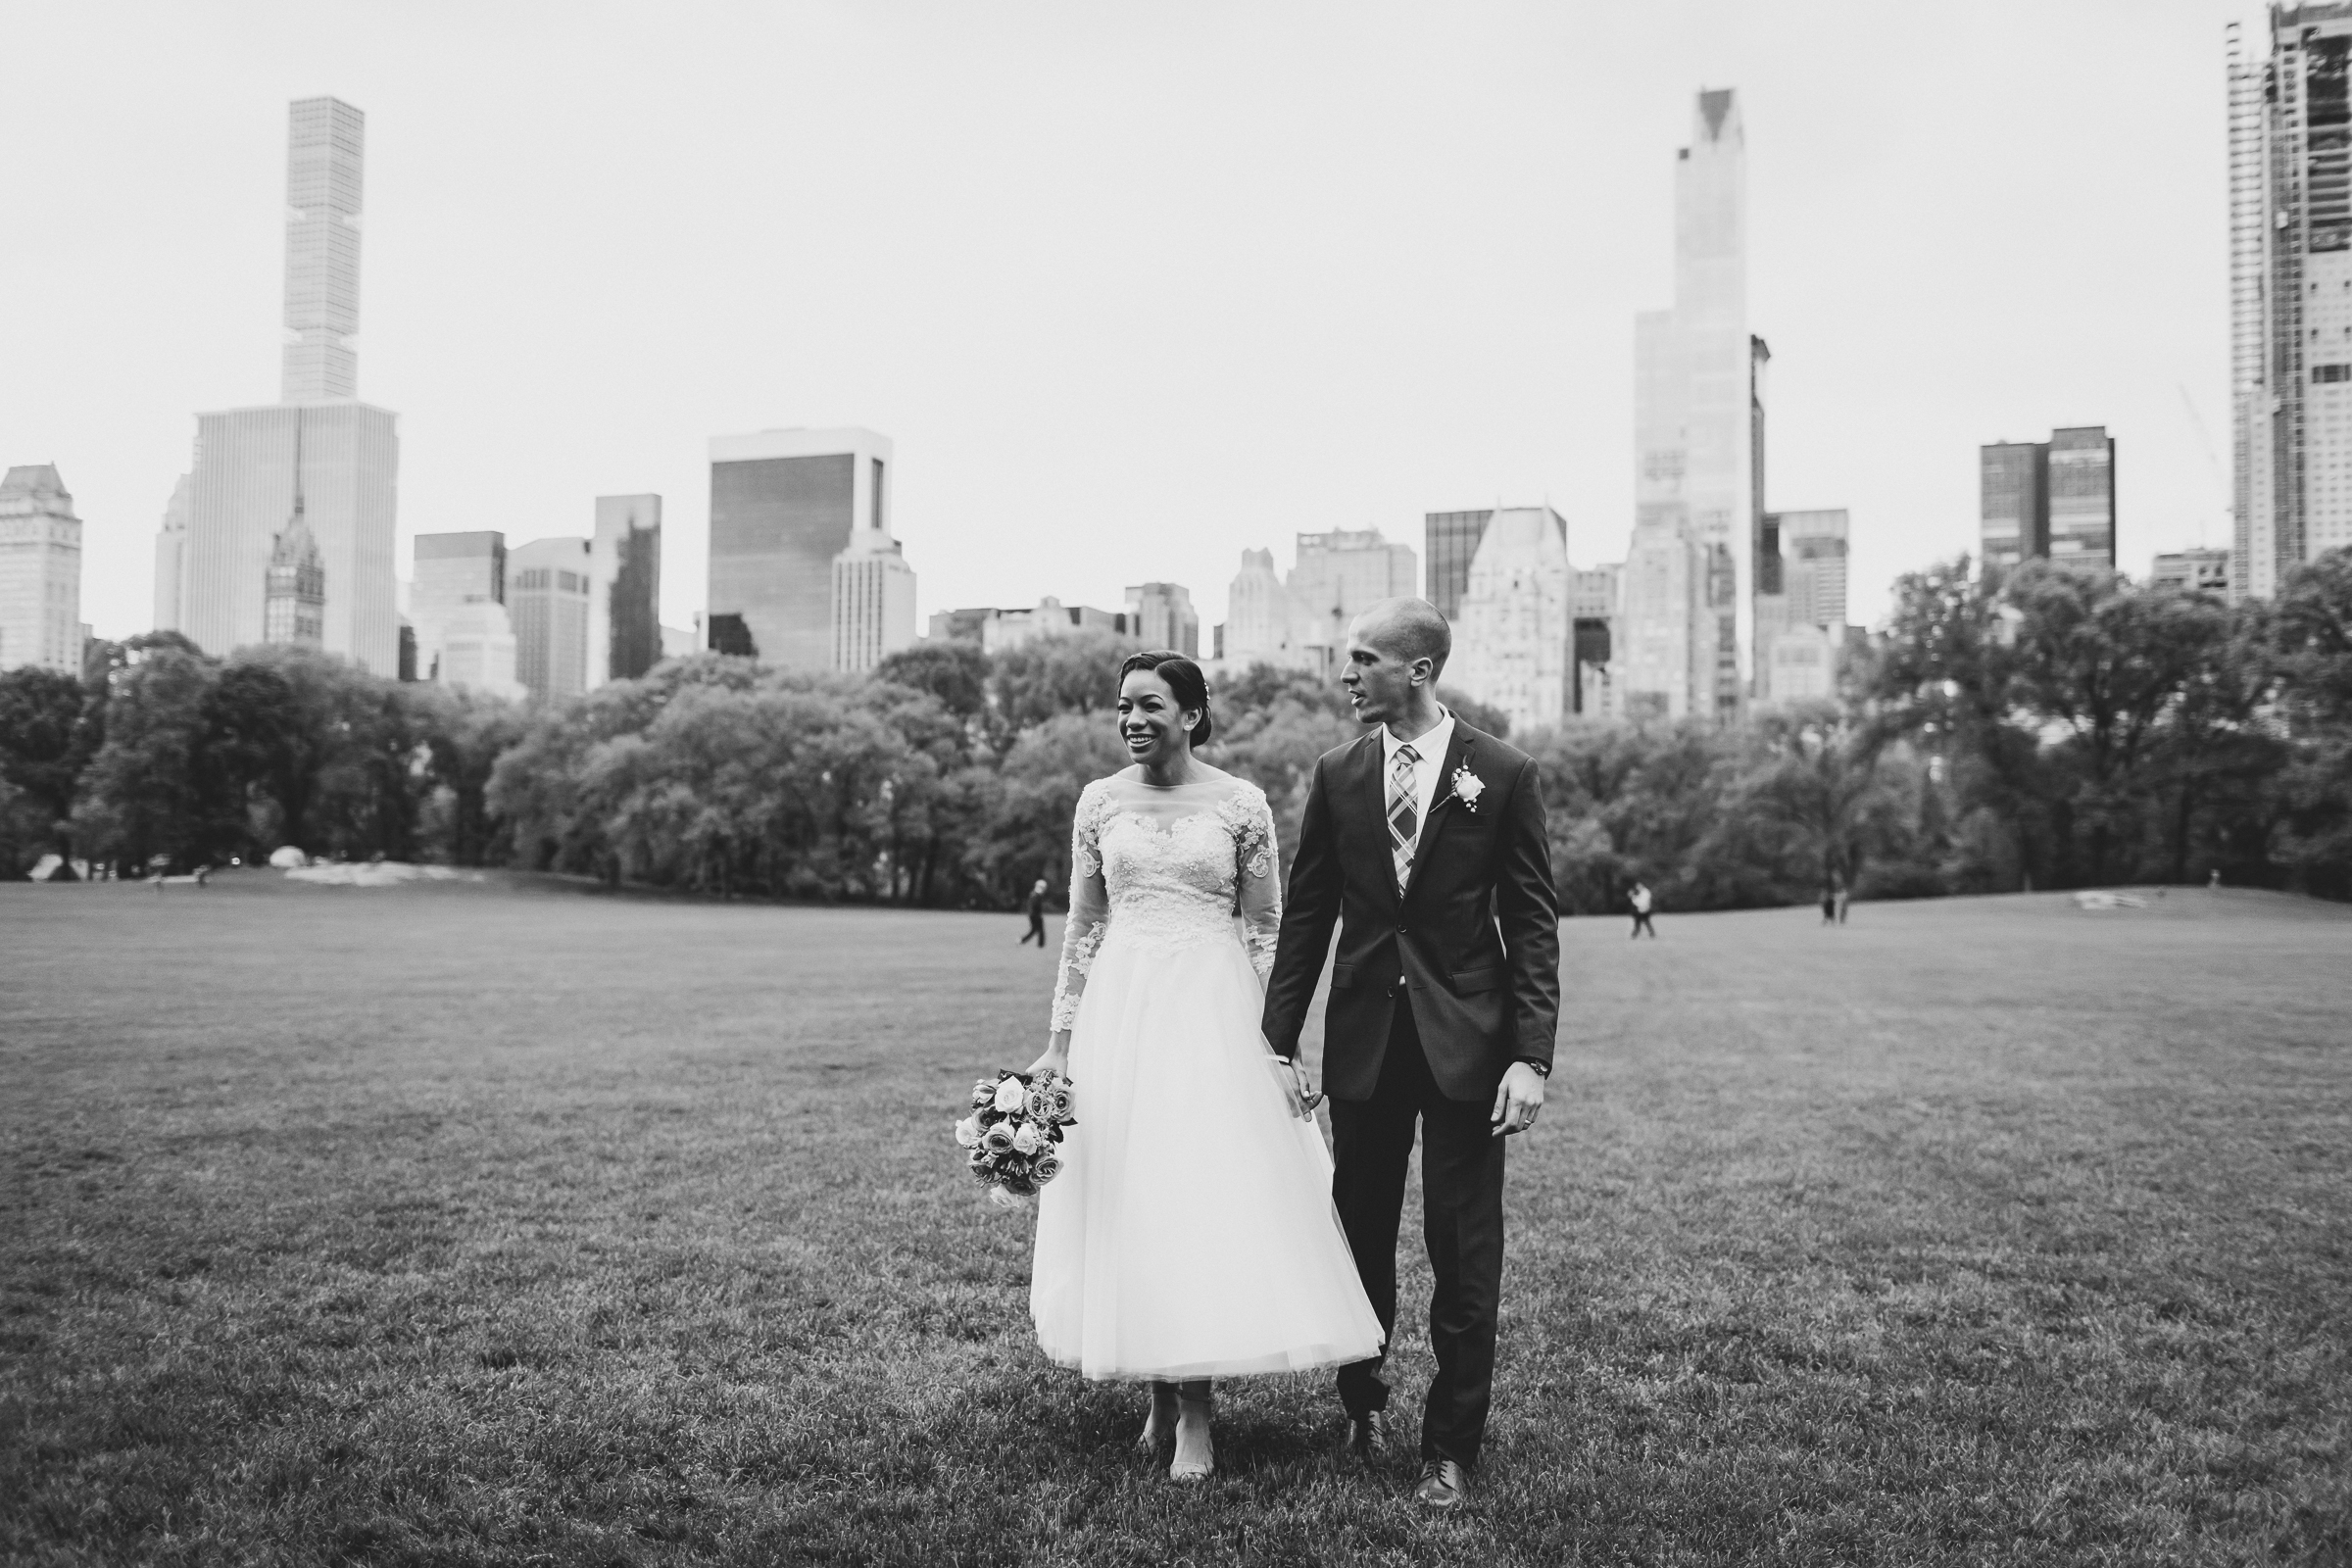 Wagner-Cove-Central-Park-Elopement-New-York-Documentary-Wedding-Photographer-30.jpg